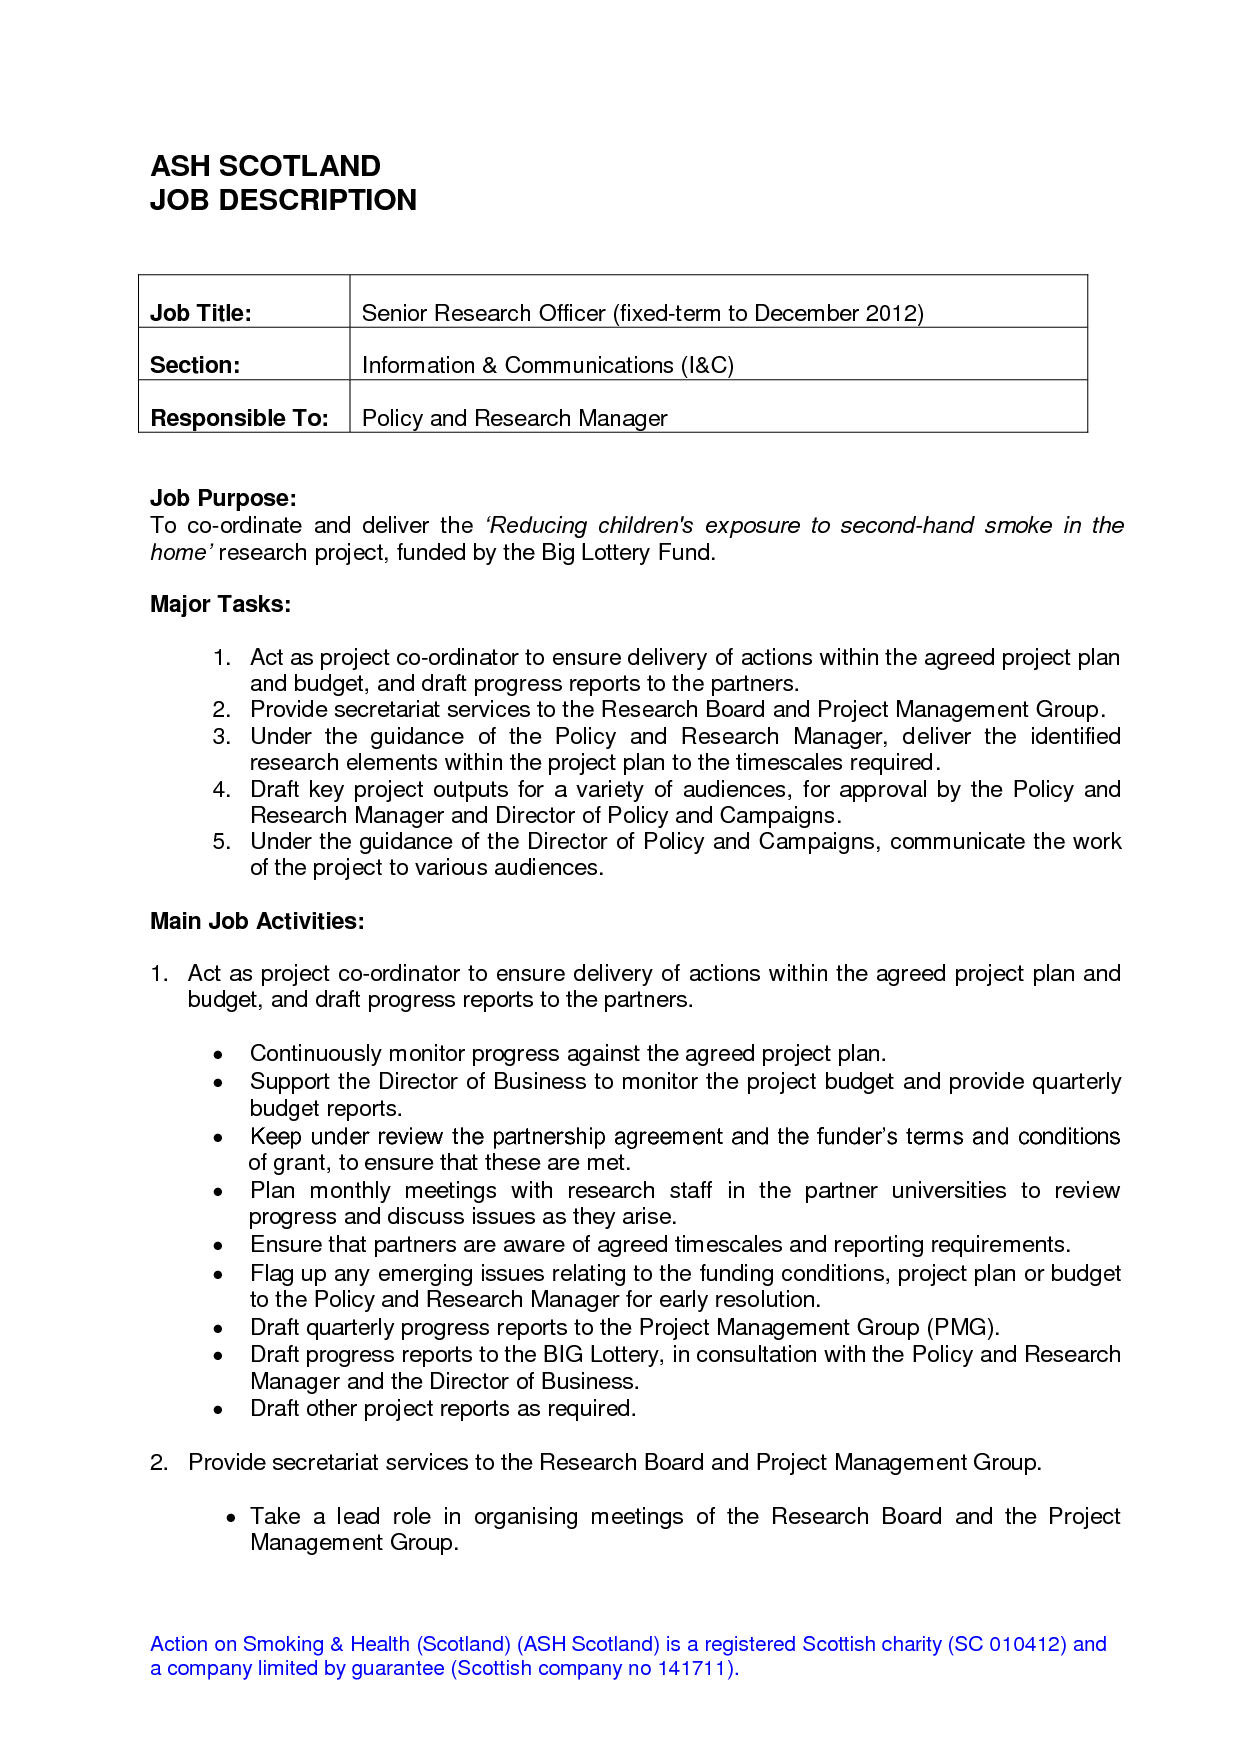 Cashier Description For Resume Job Description  Job Description Forms  Pinterest  Job Description